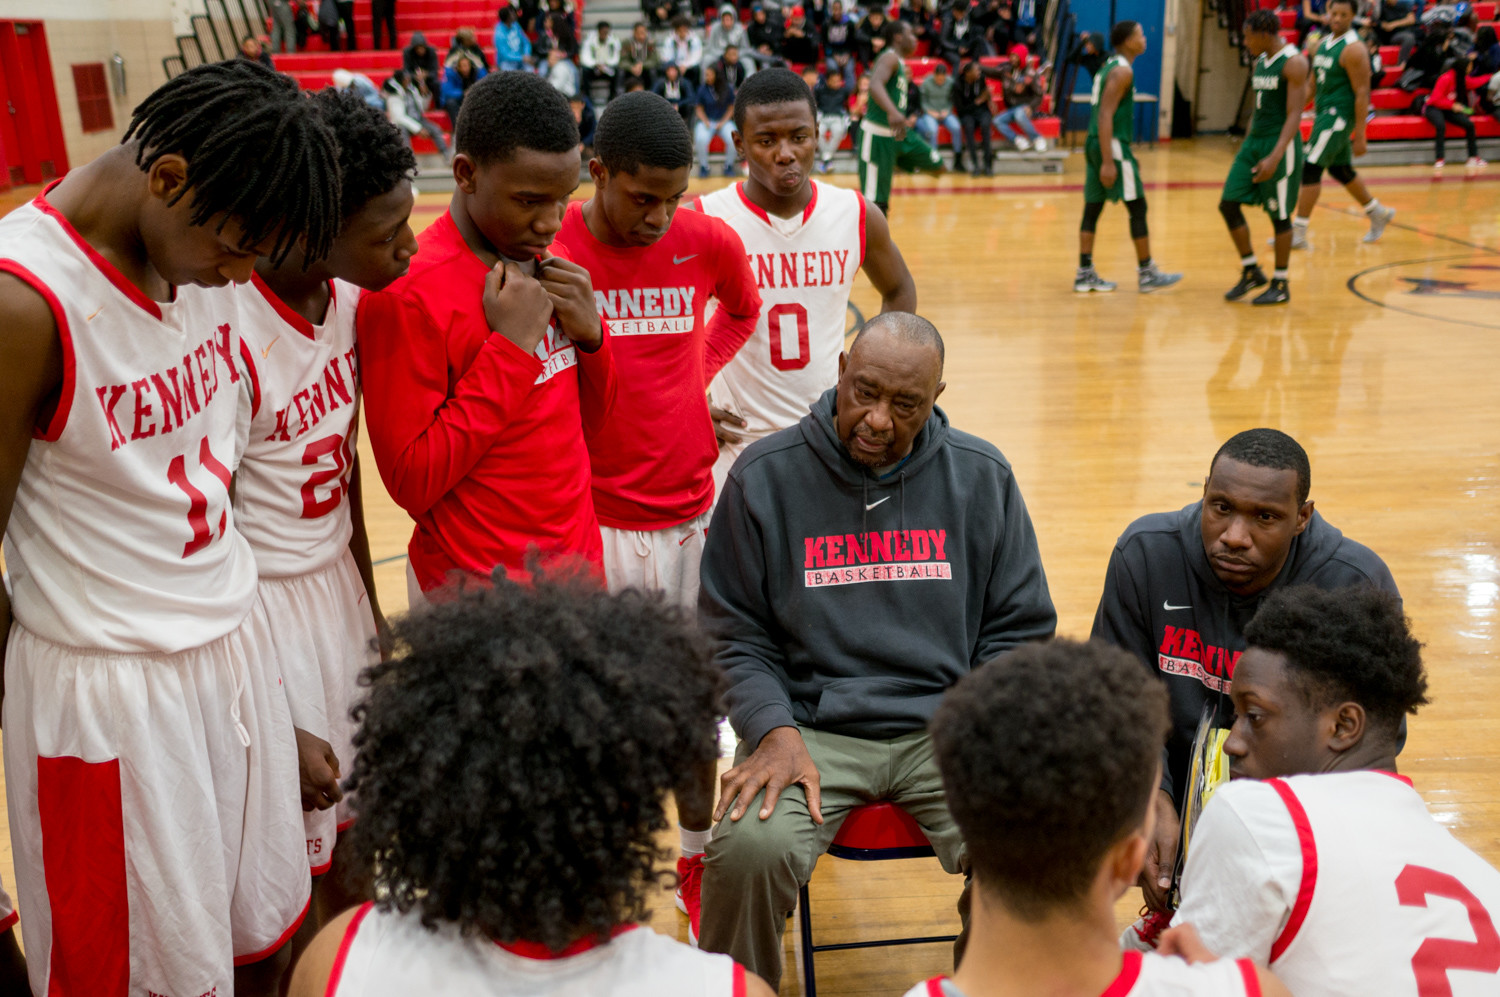 Kennedy head coach Johnny Mathis talks strategy with his Knights during last week's game against Truman.